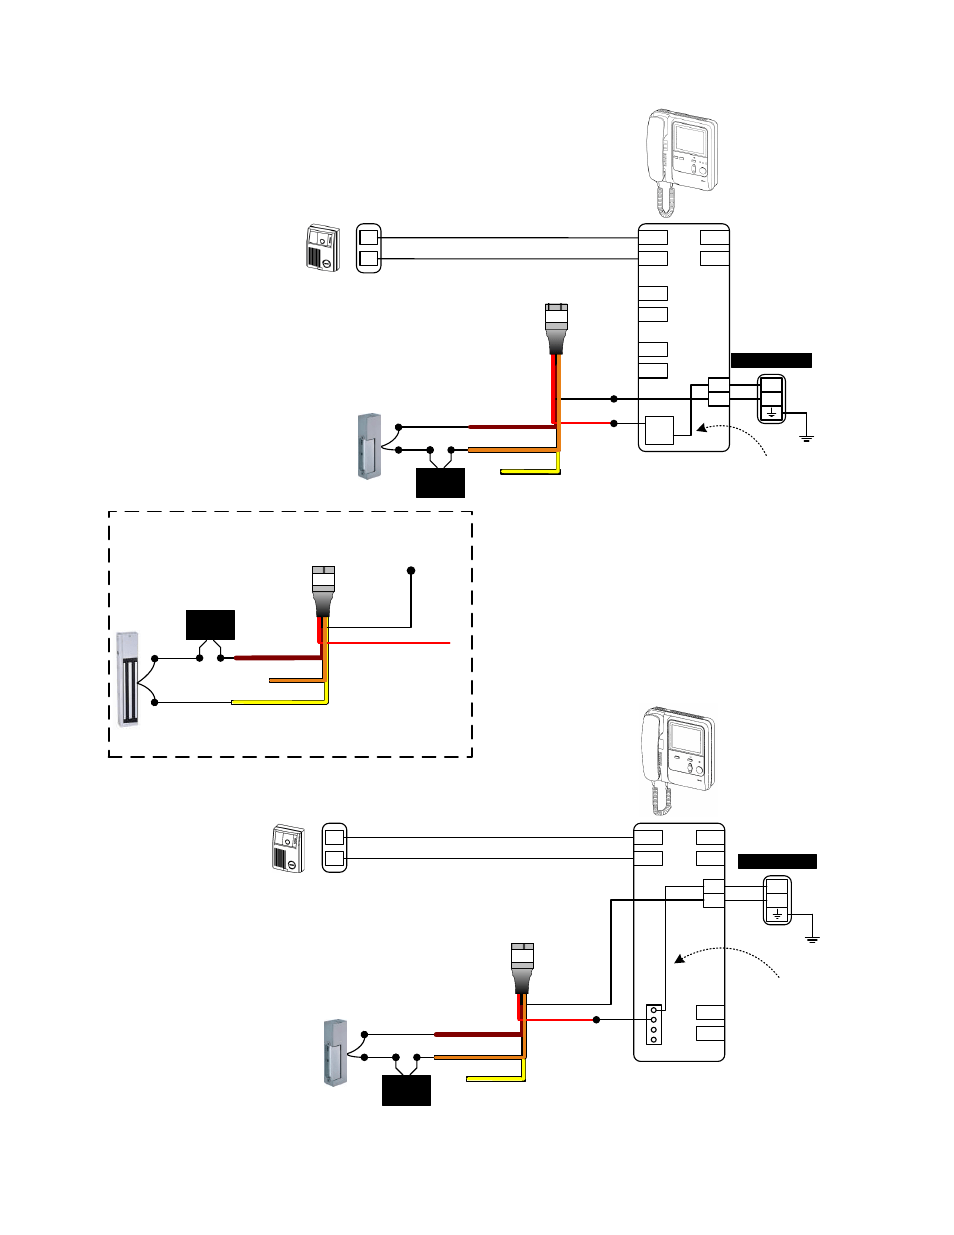 aiphone door release relay module ry 24l page2?resize\=665%2C861 wiring diagram hid edge solo 5 pin relay wiring diagram, led von duprin wiring diagram at n-0.co